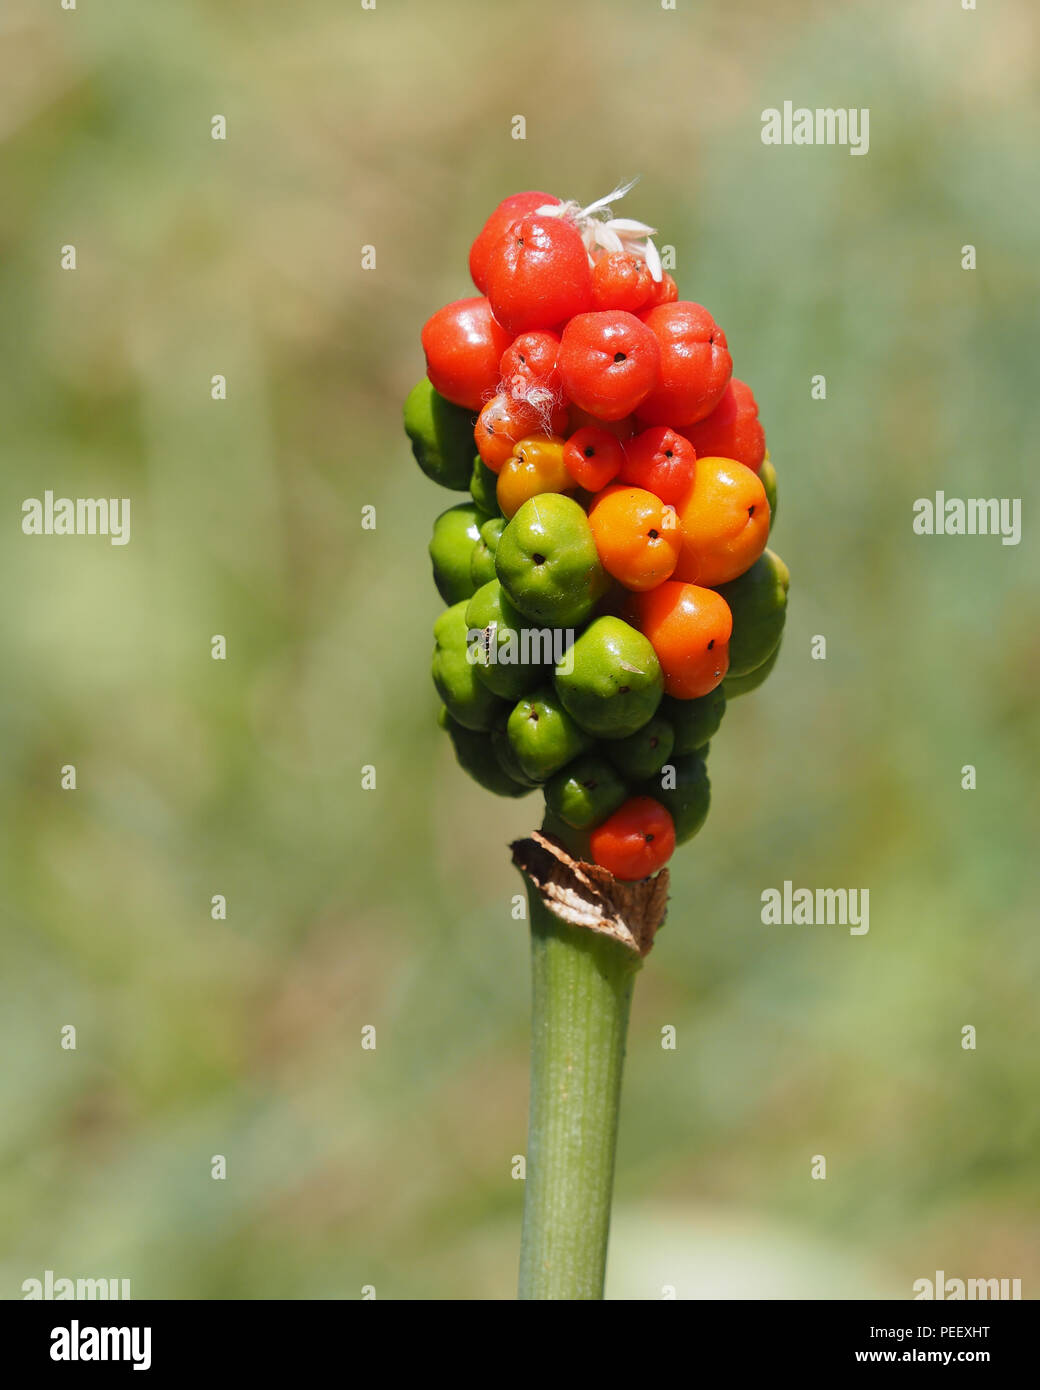 Lords-and-ladies plant (Arum maculatum) with orange, red and green berries. Tipperary, Ireland - Stock Image